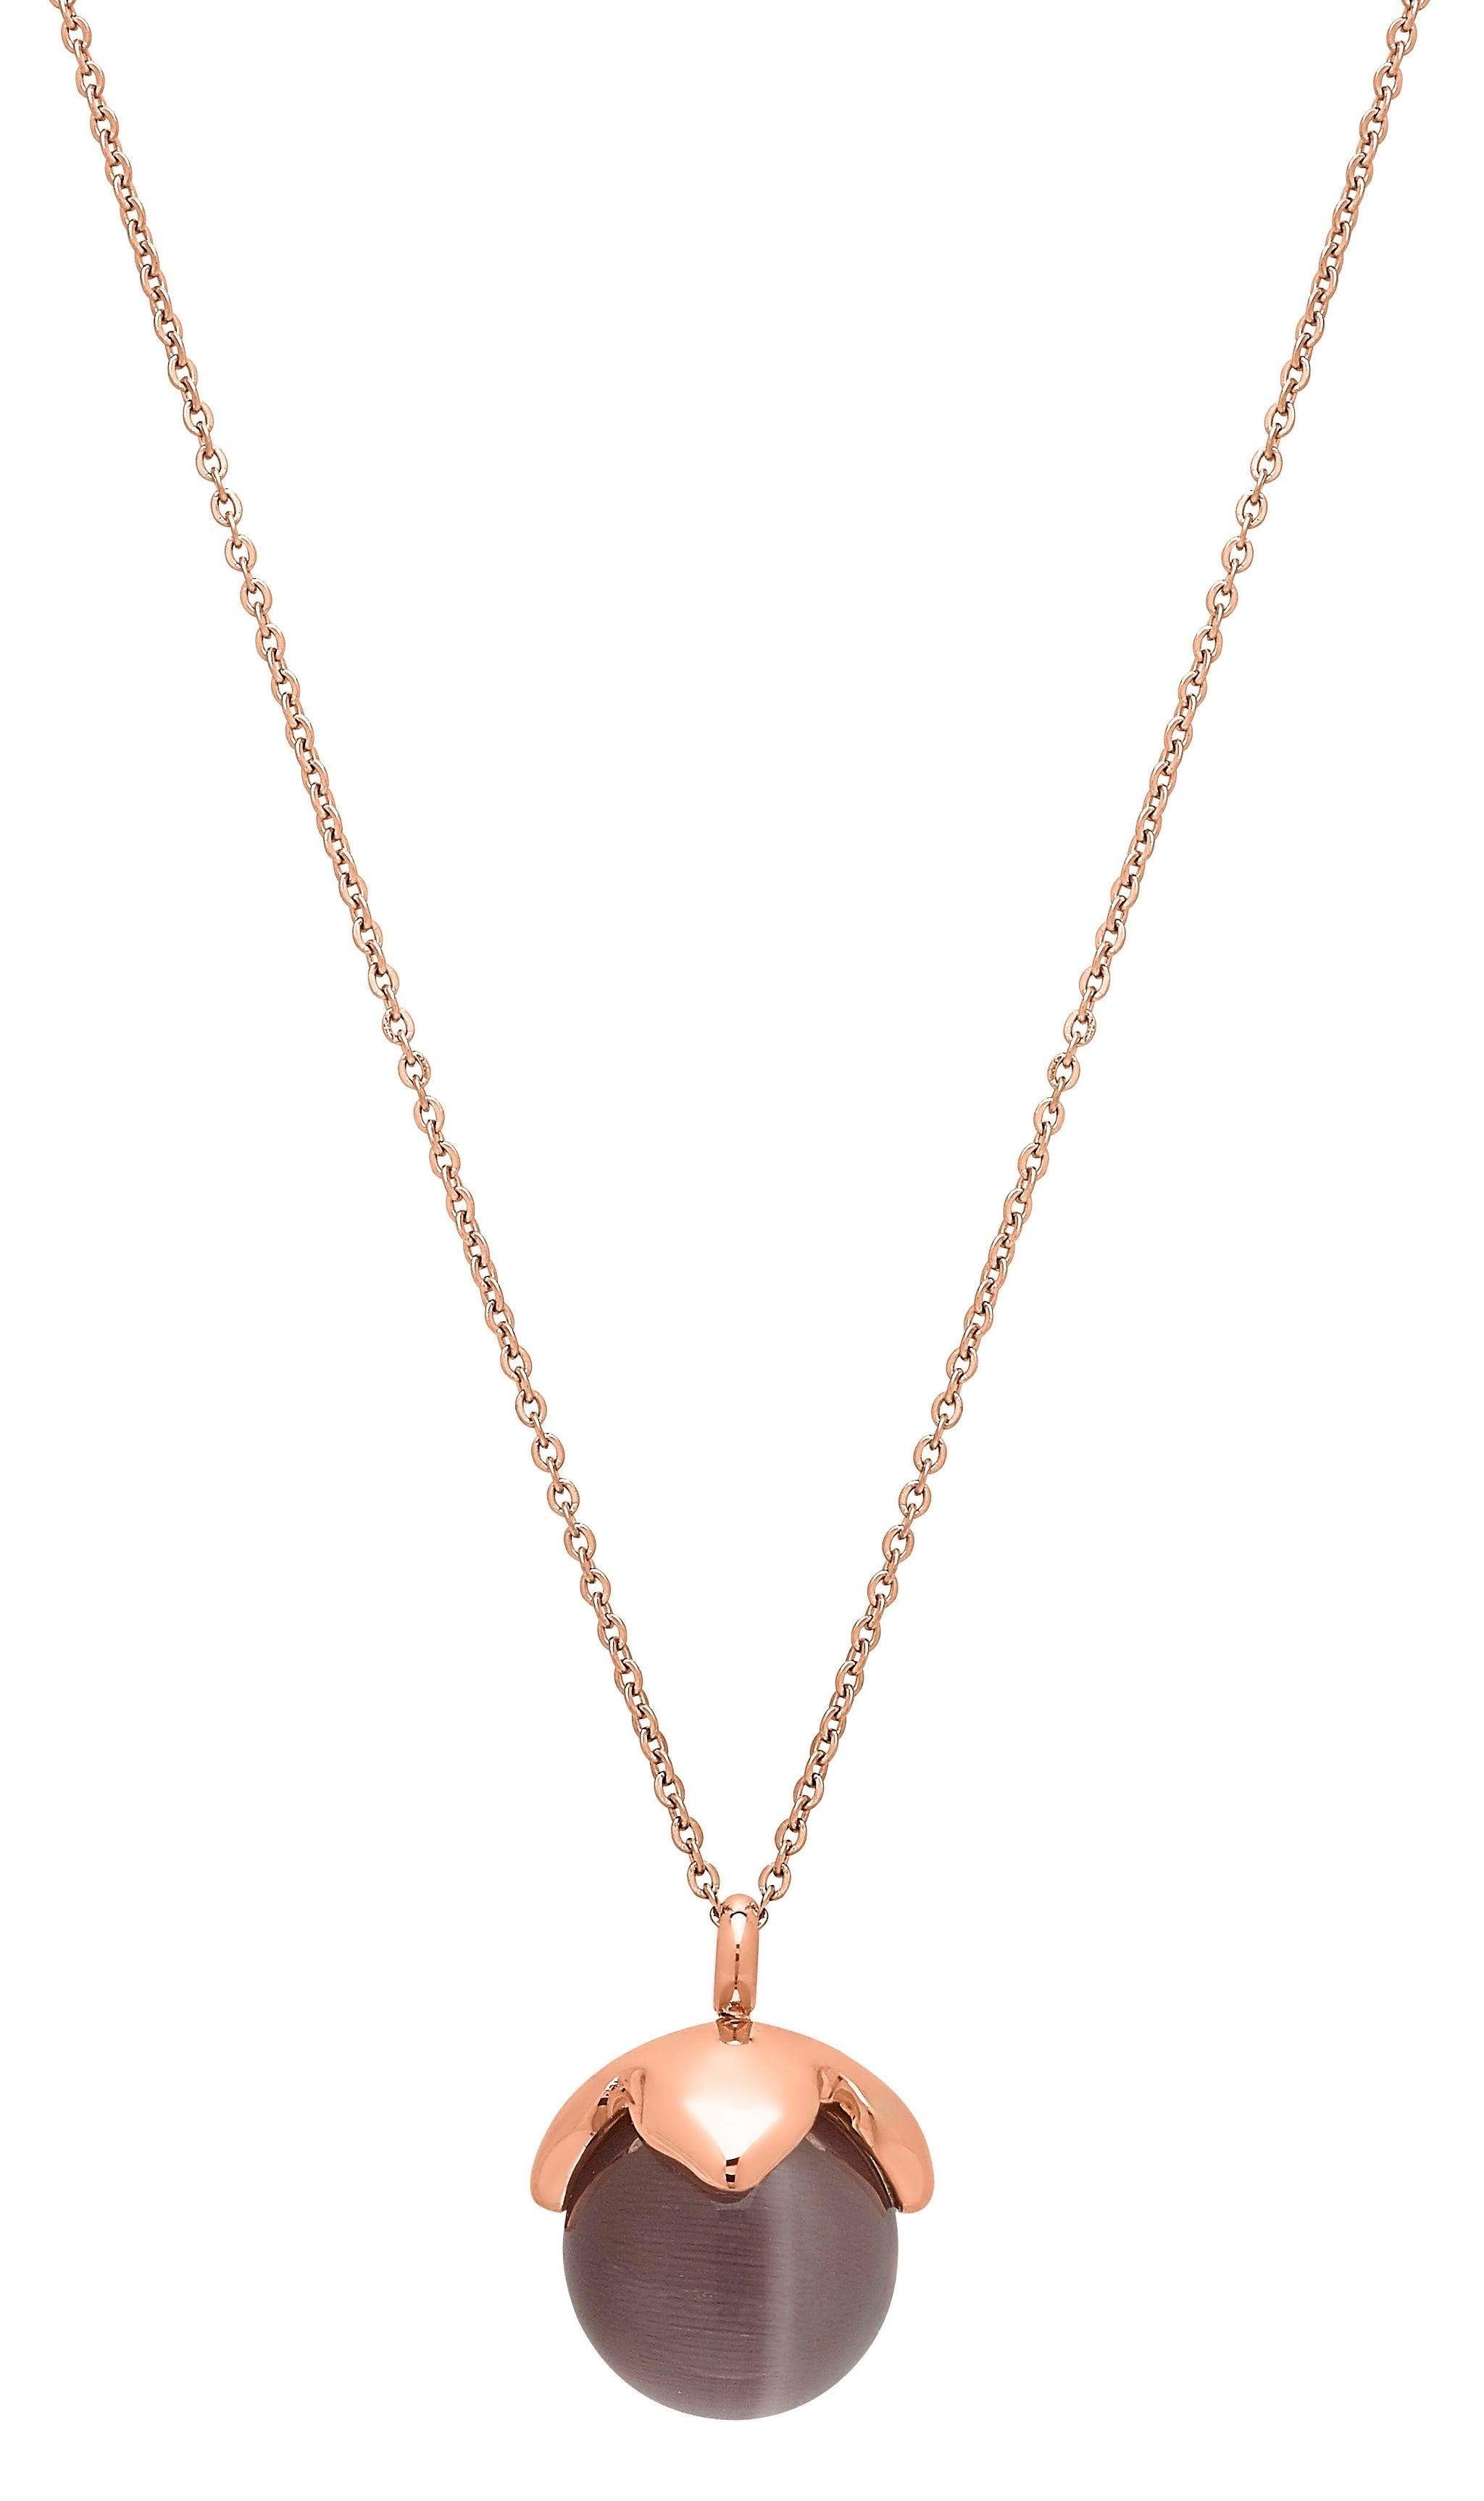 Brown Glass Bead Fashion Necklace in Rose Plated Stainless Steel